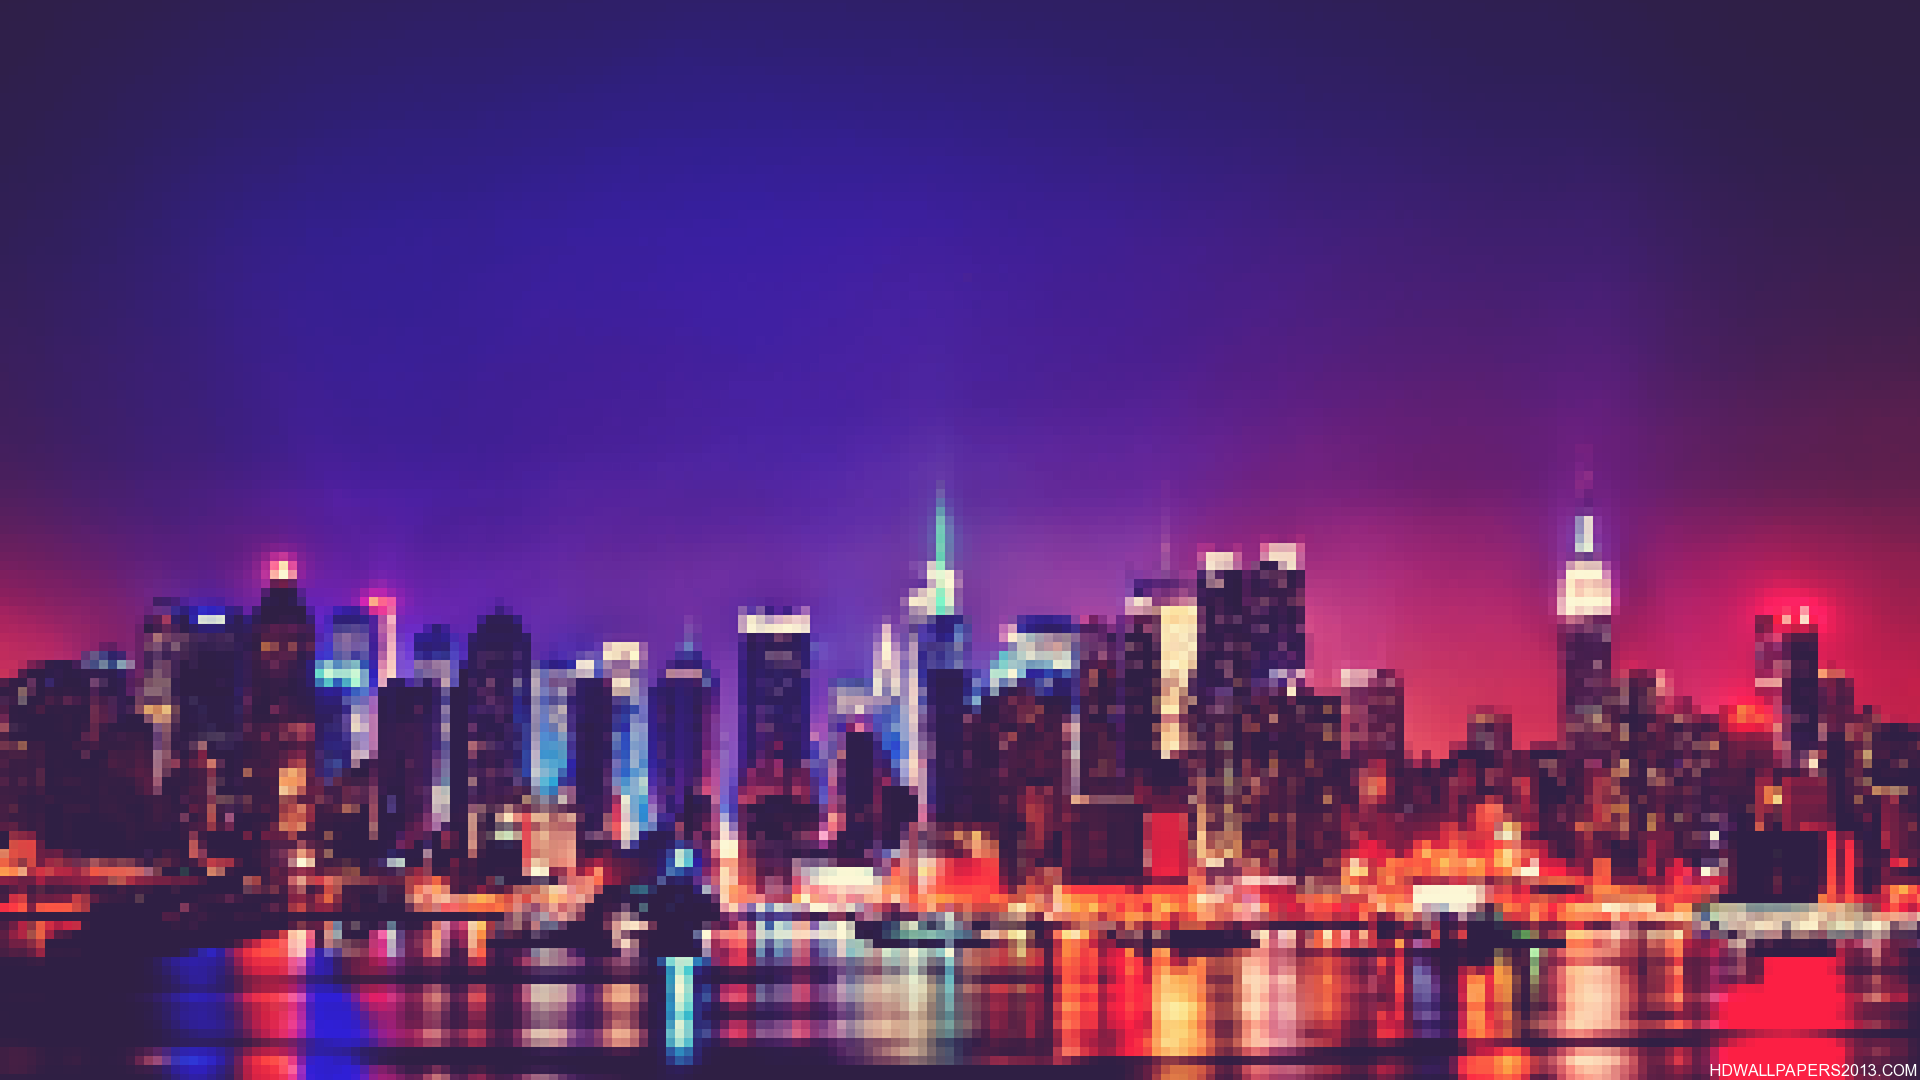 Cool Wallpaper of New York City High Definition Wallpapers High 1920x1080